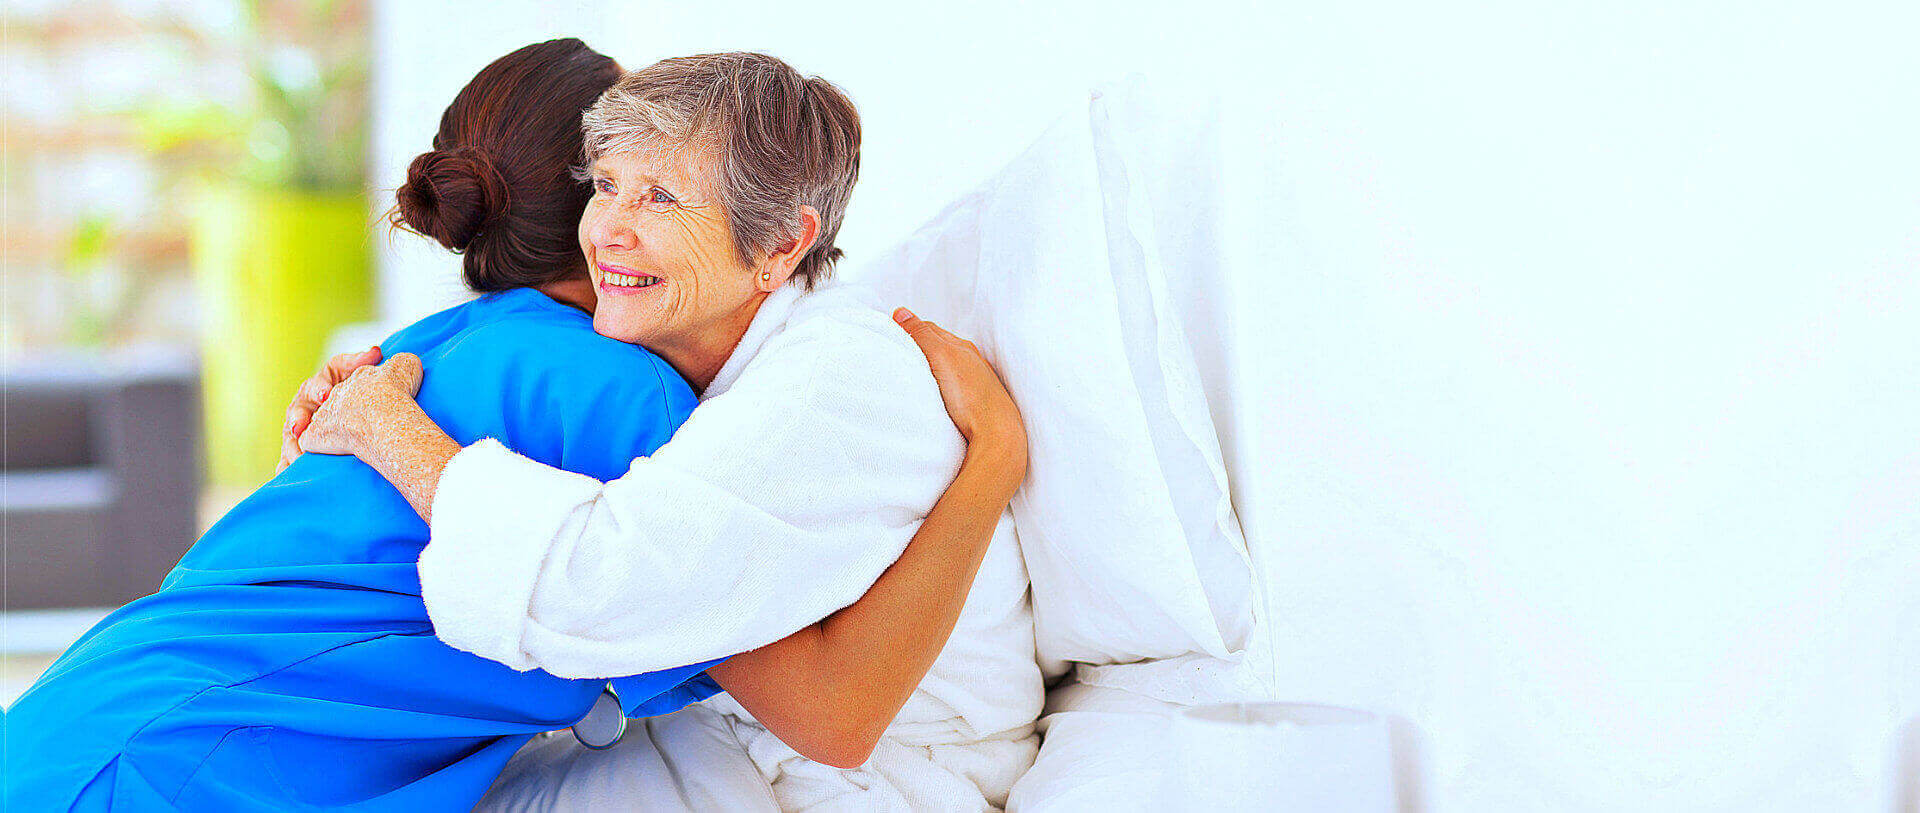 nurse and senior woman are hugging together while smiling